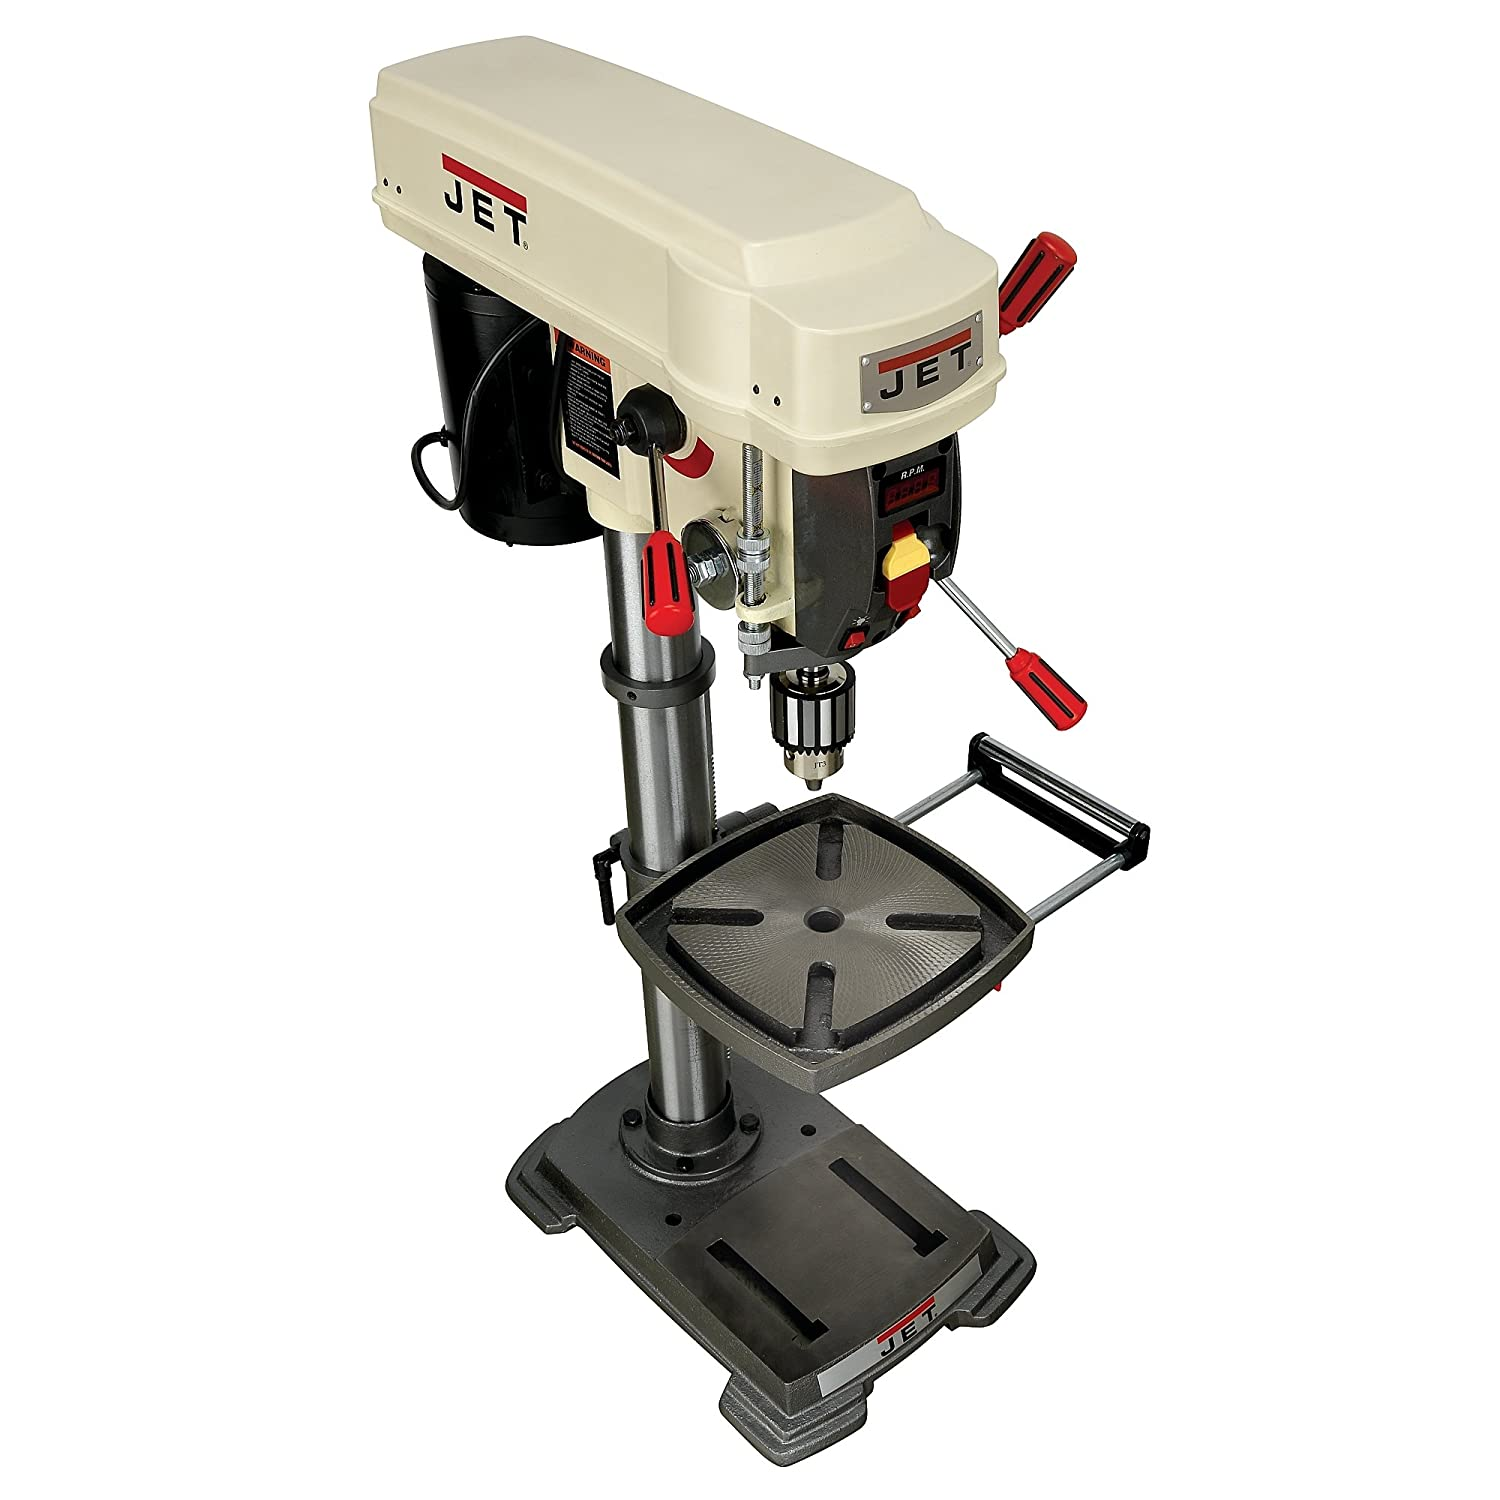 What To Look For When Purchasing A Drill Press